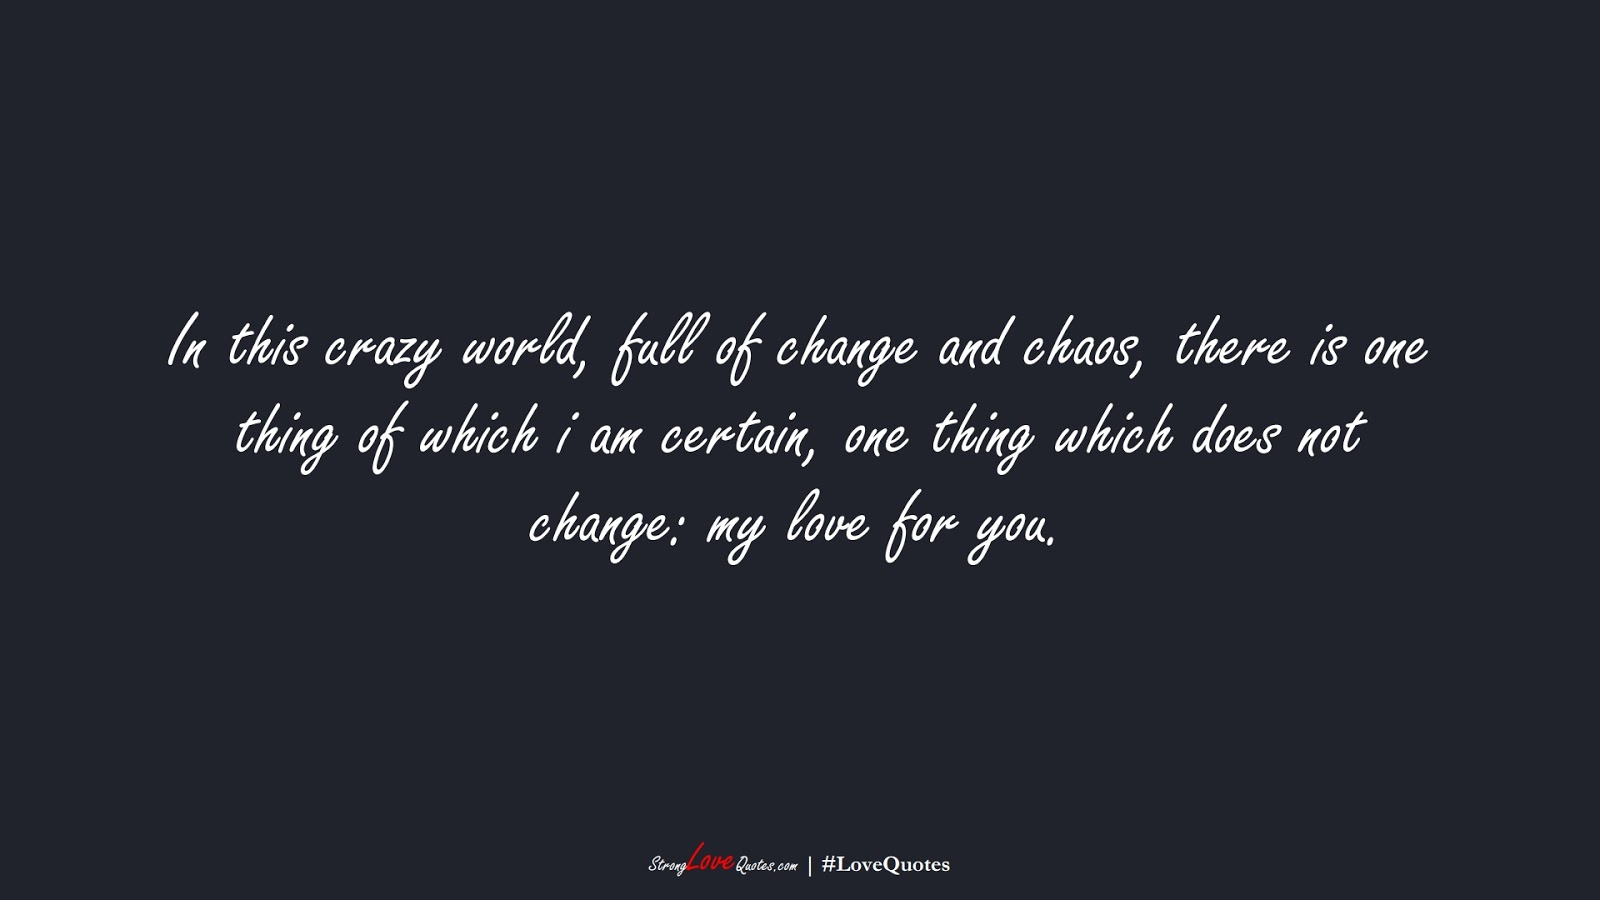 In this crazy world, full of change and chaos, there is one thing of which i am certain, one thing which does not change: my love for you.FALSE